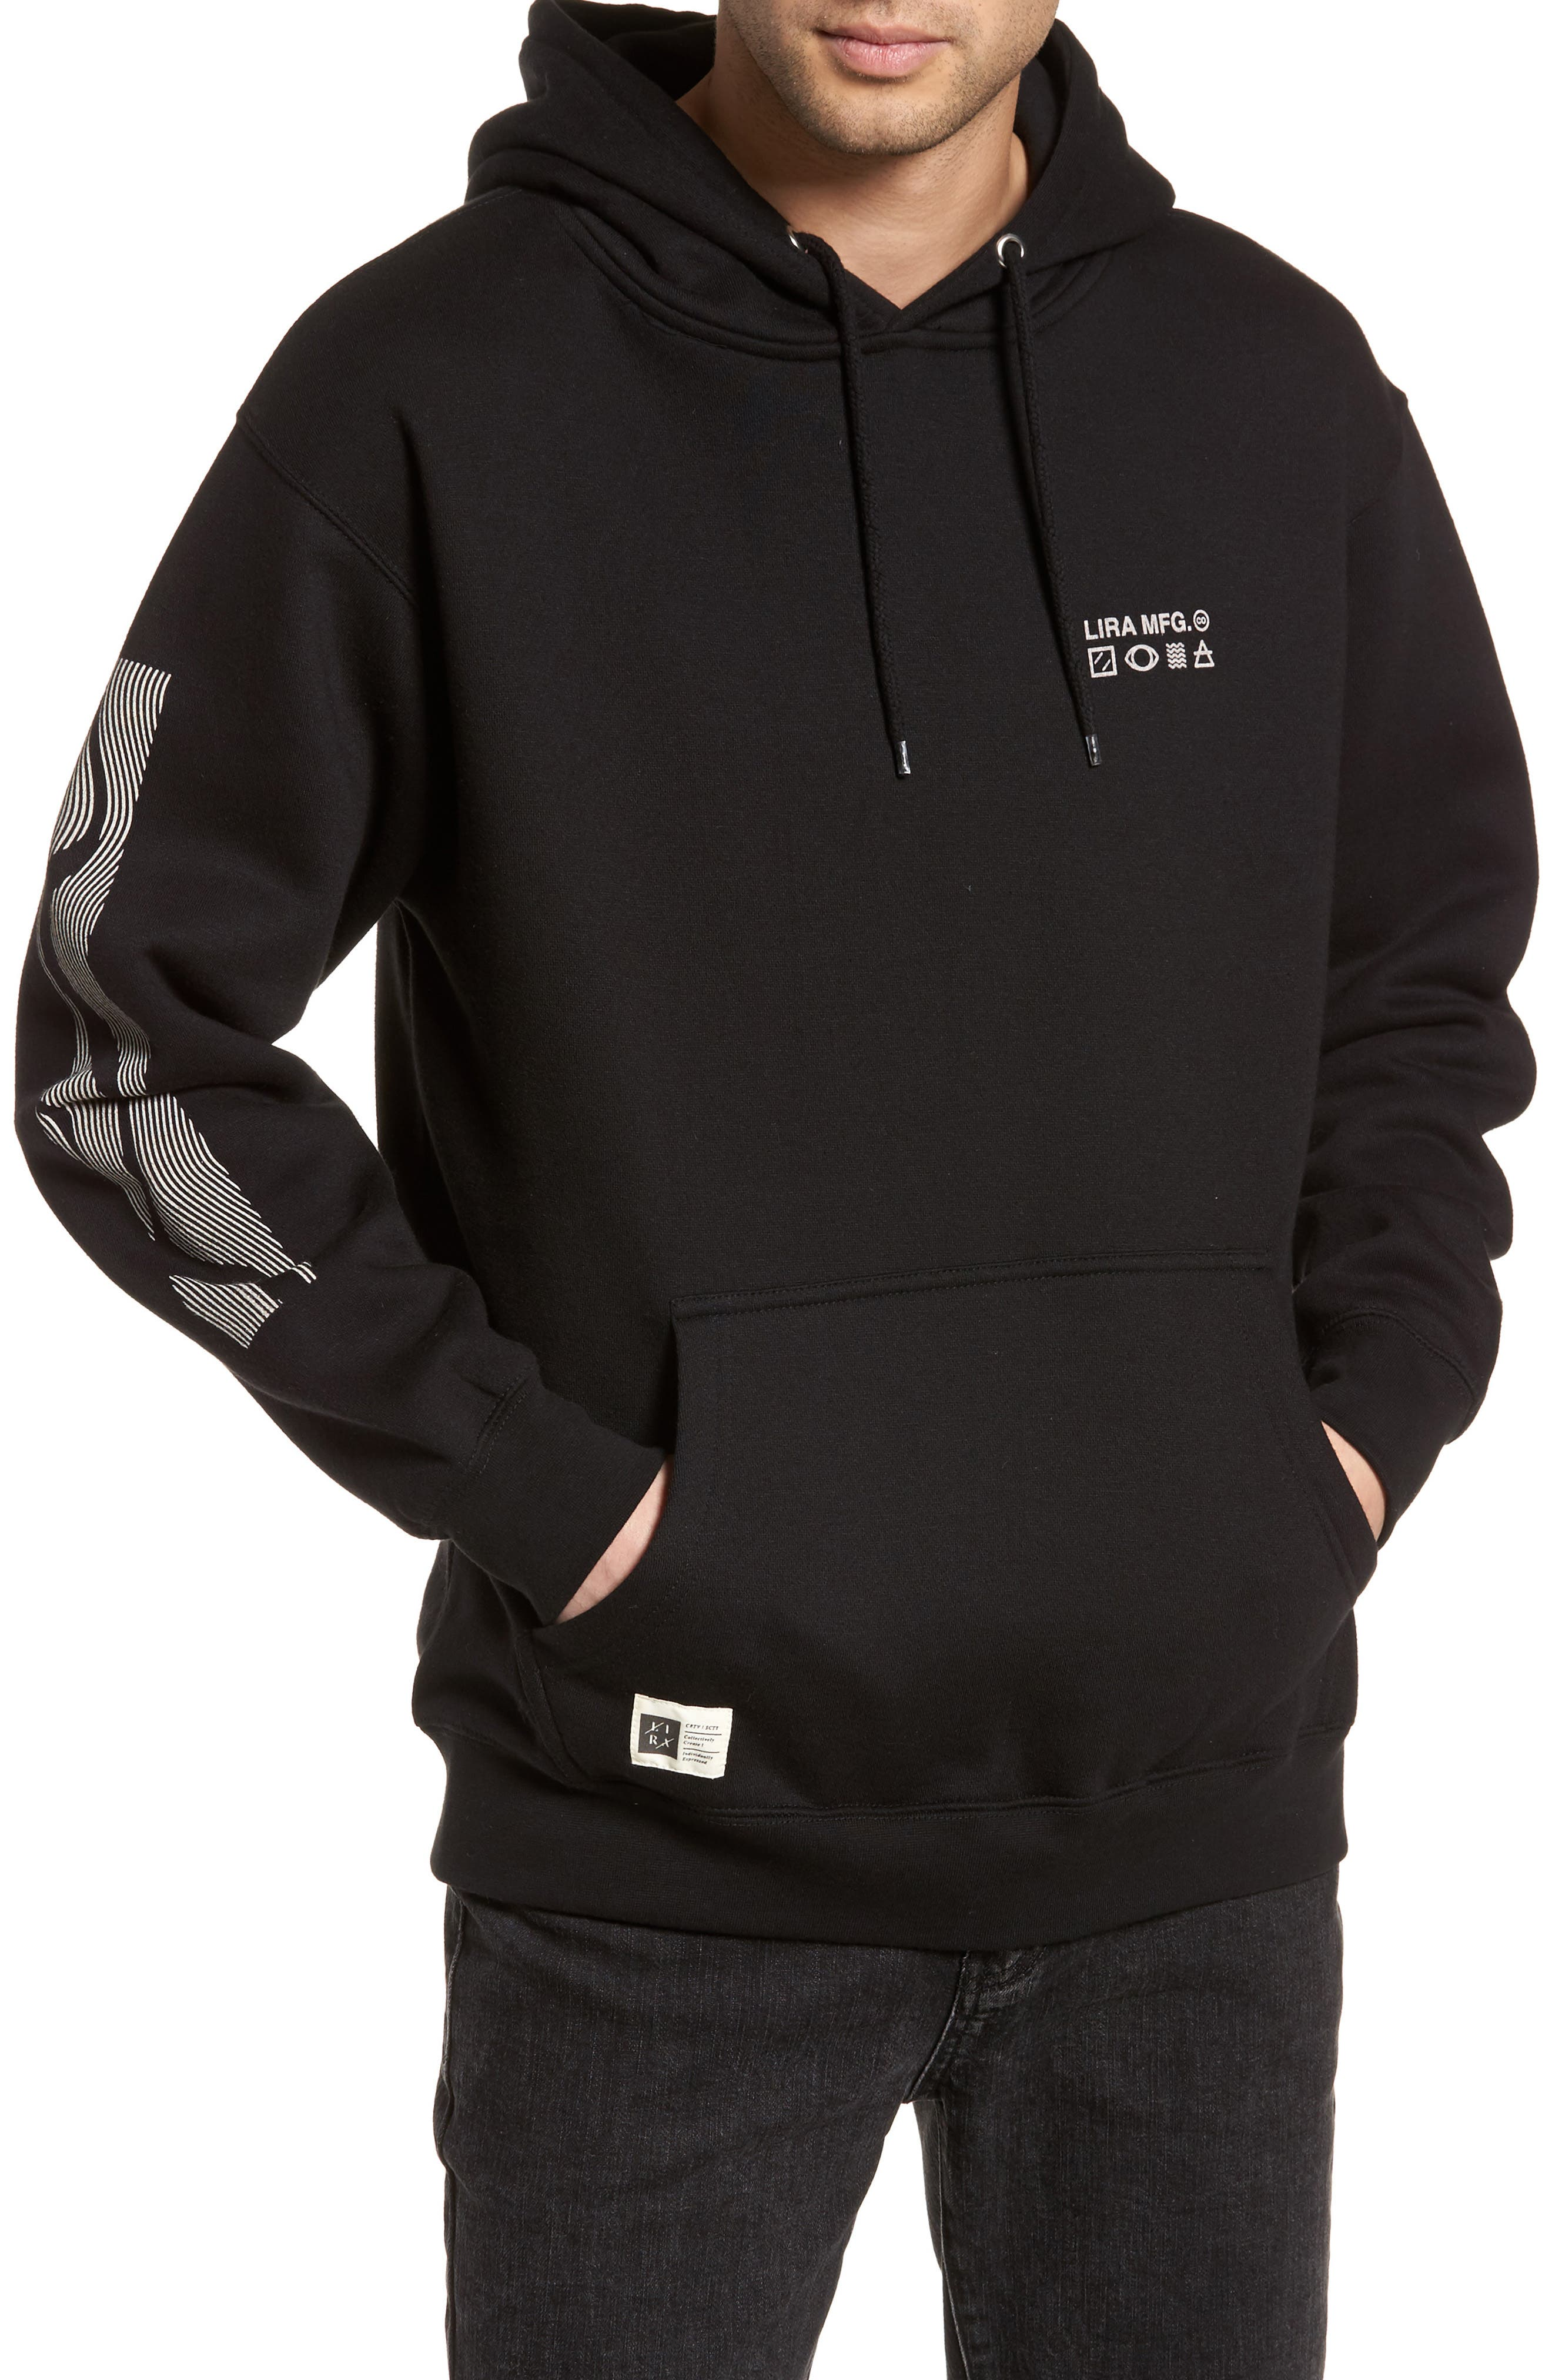 Coil Graphic Hoodie,                         Main,                         color, Black